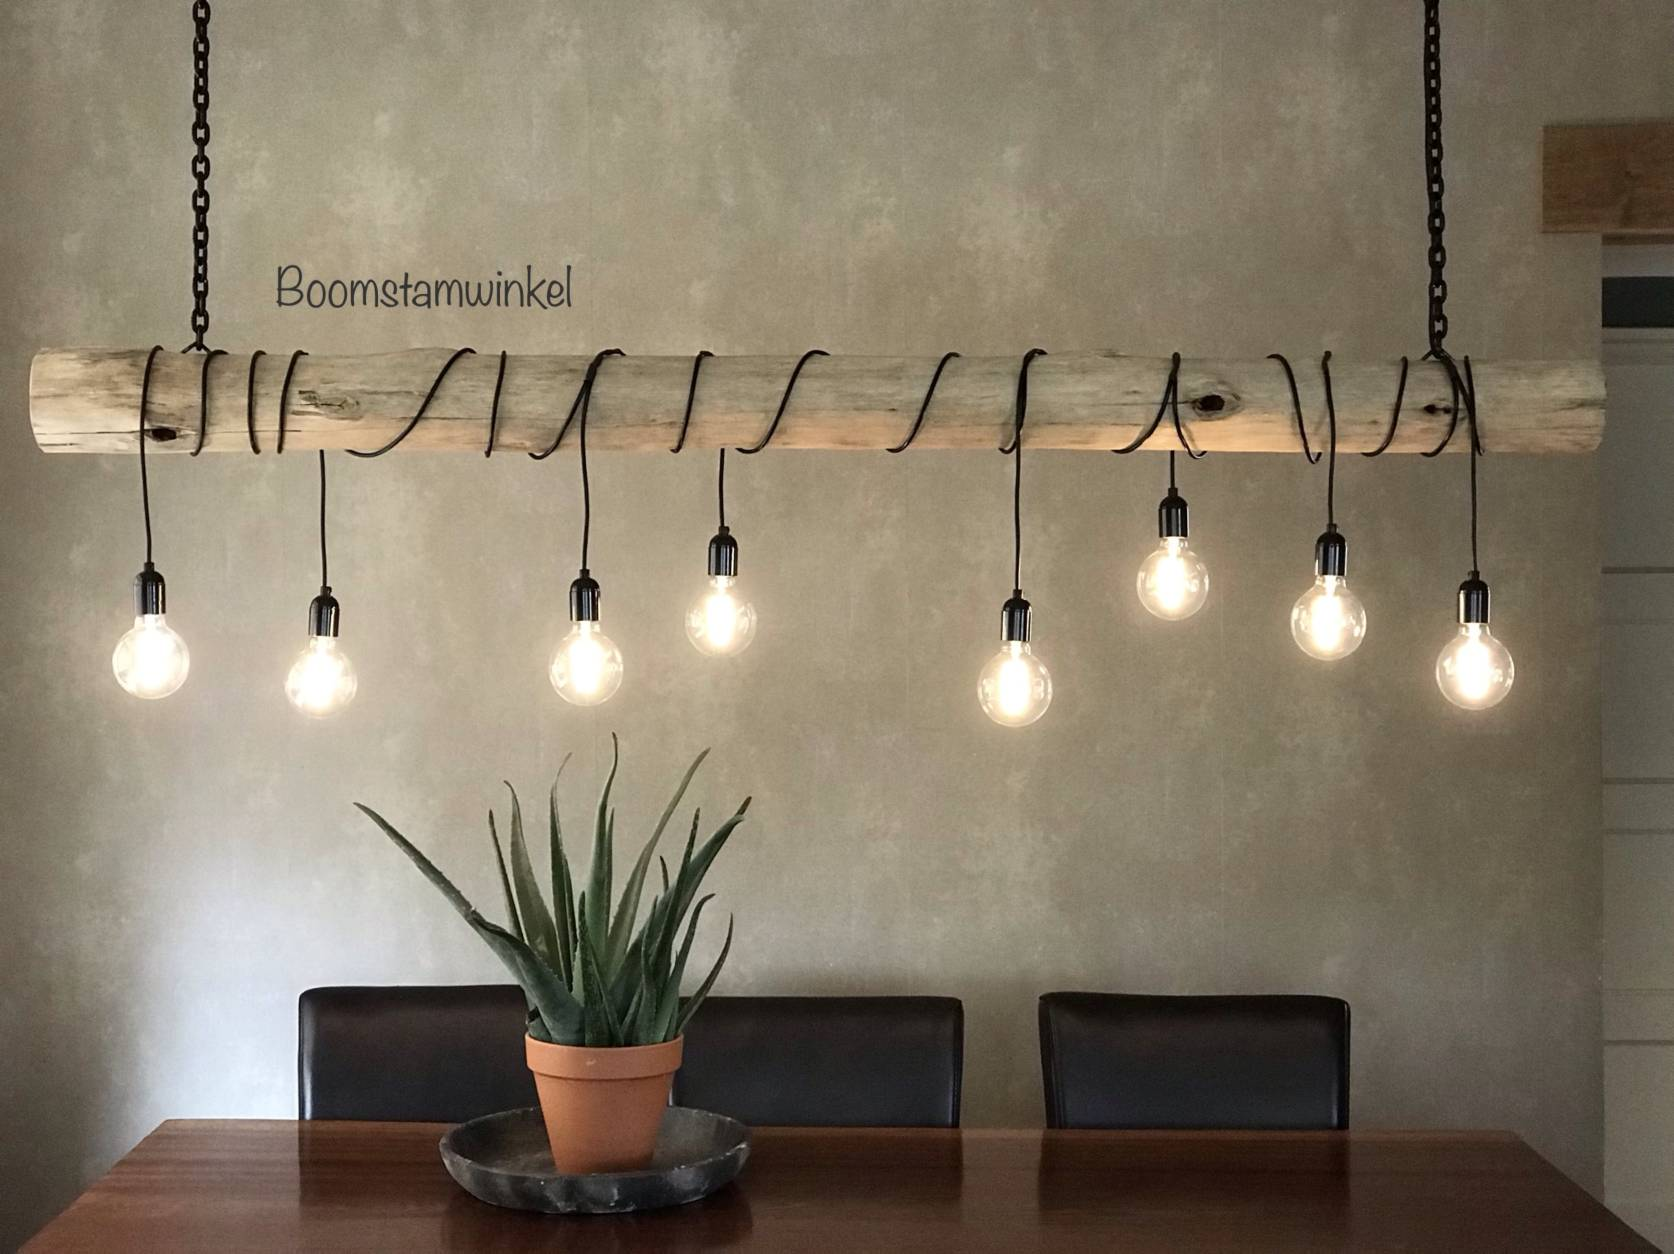 boomstam lamp kooldraad led lampen